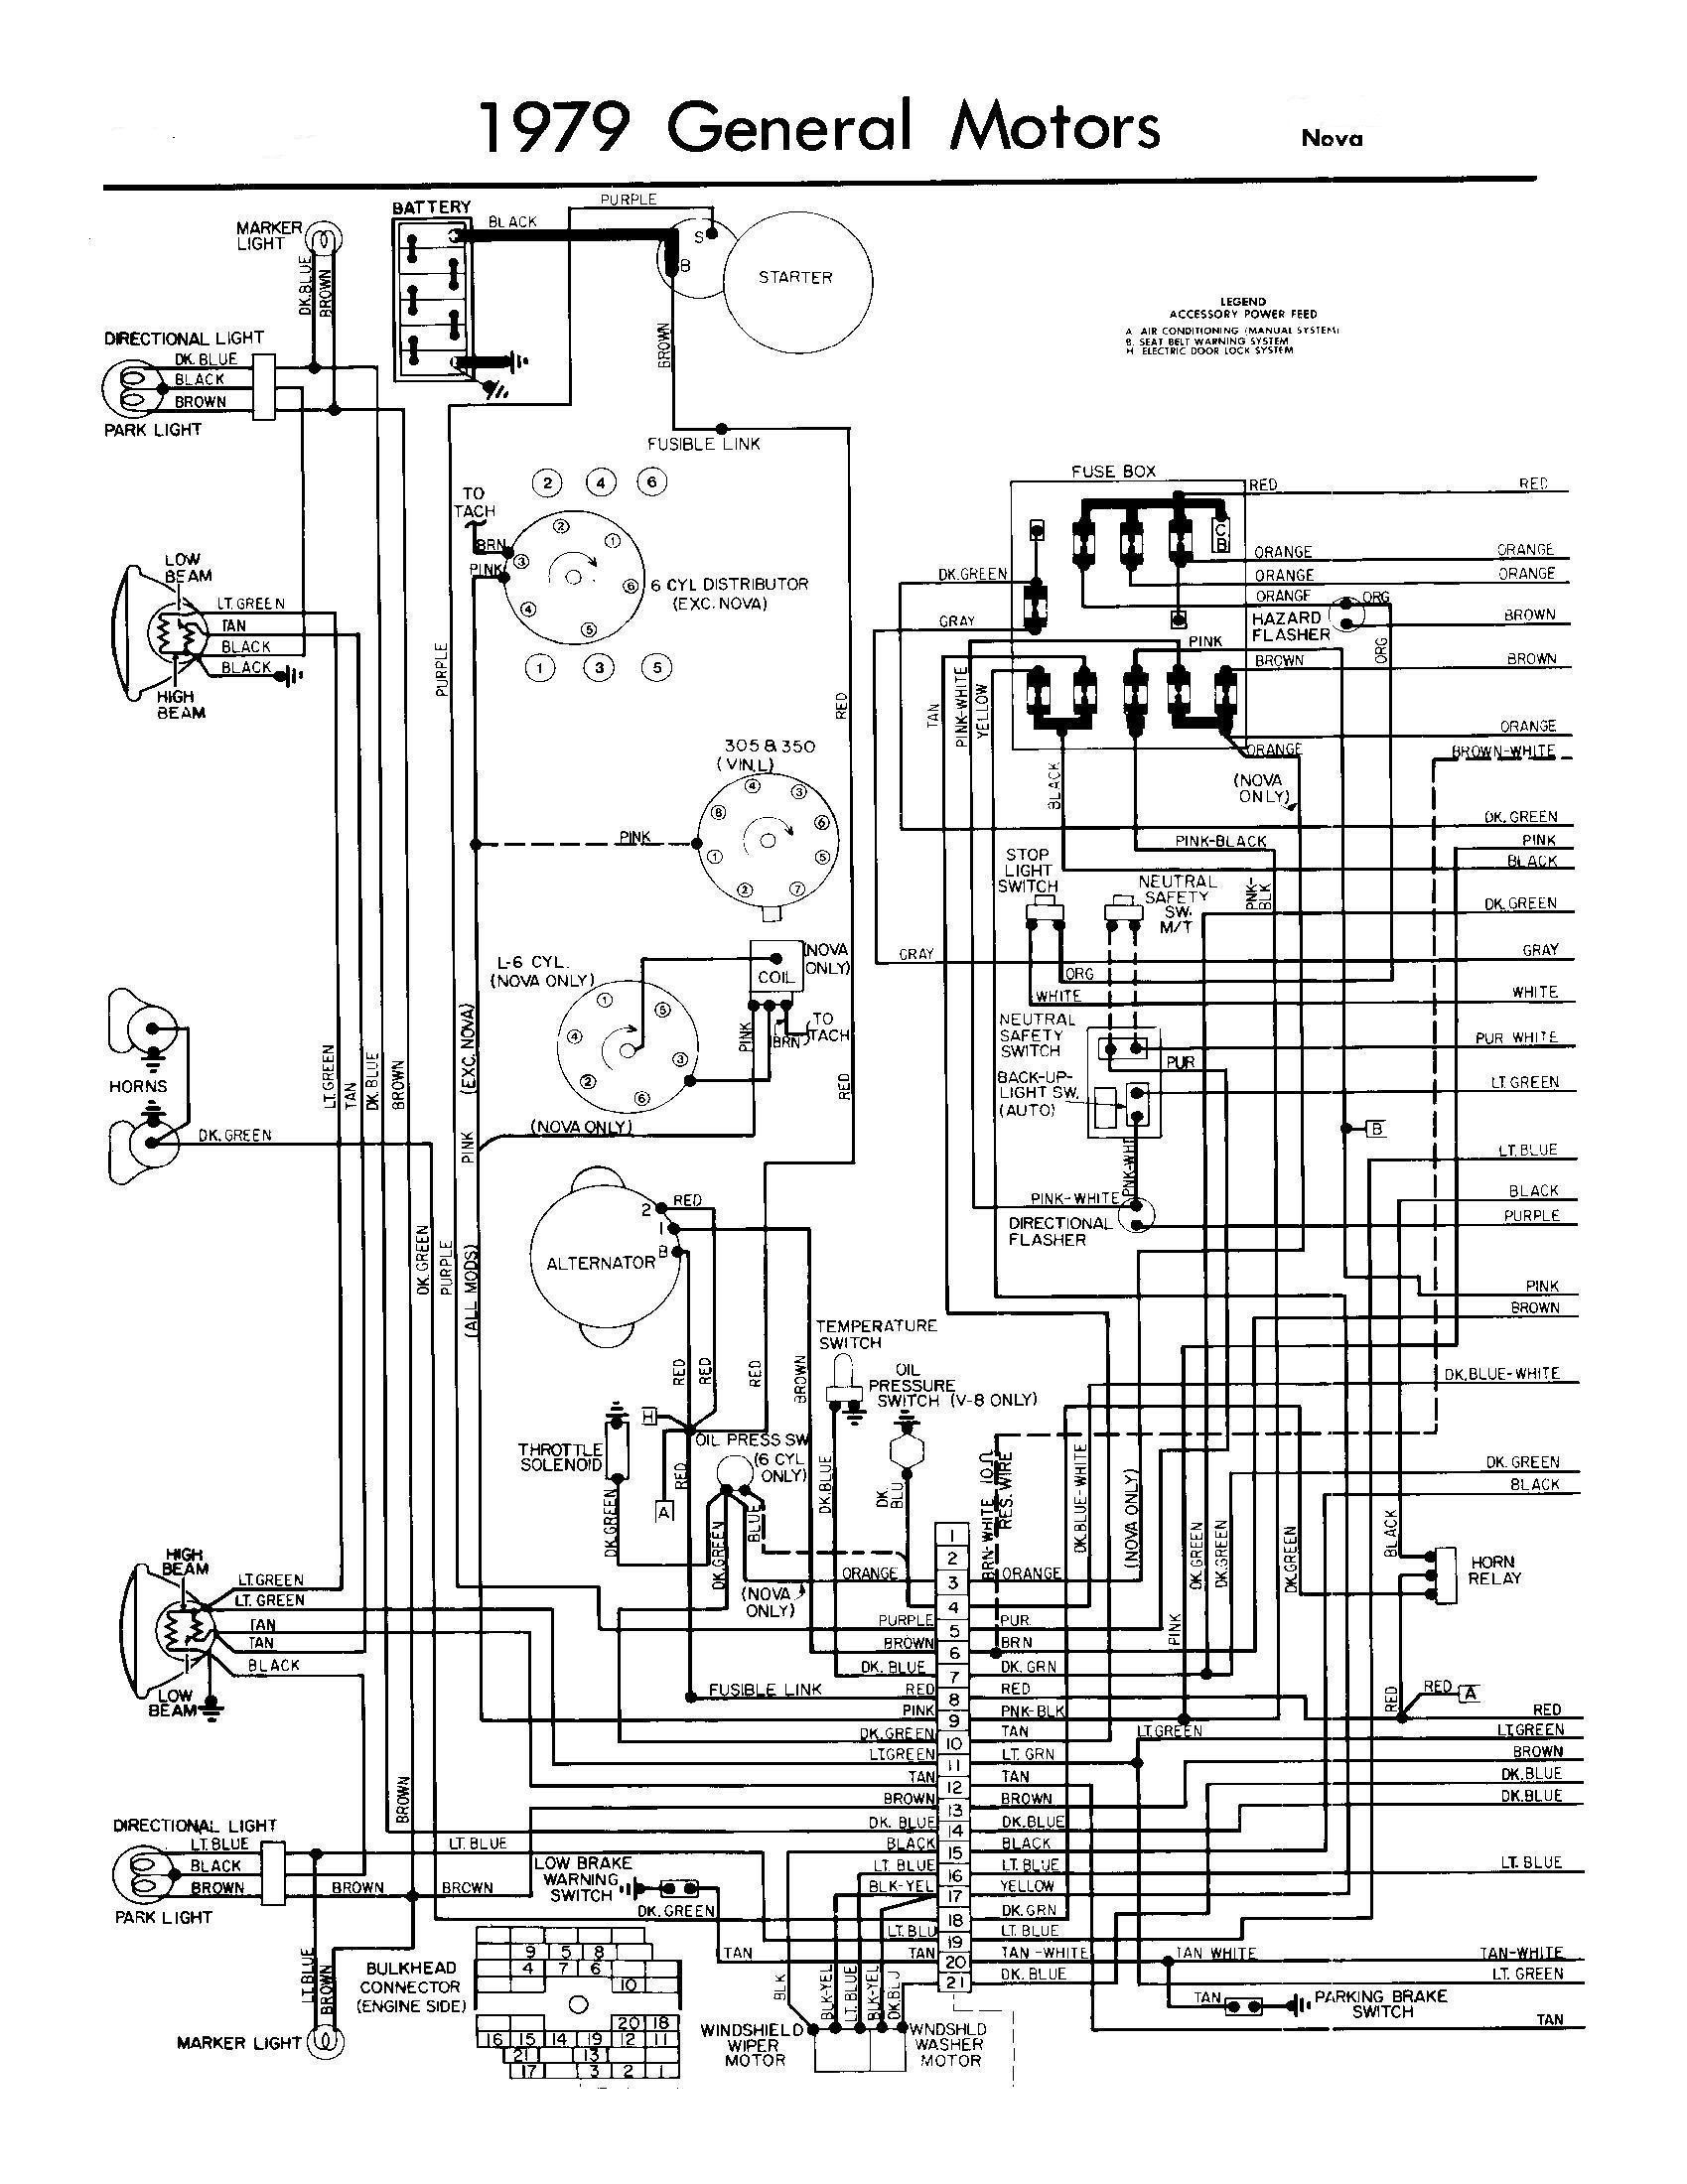 1979 chevy truck fuse box diagram moreover 1979 corvette fuse box rh quickcav co